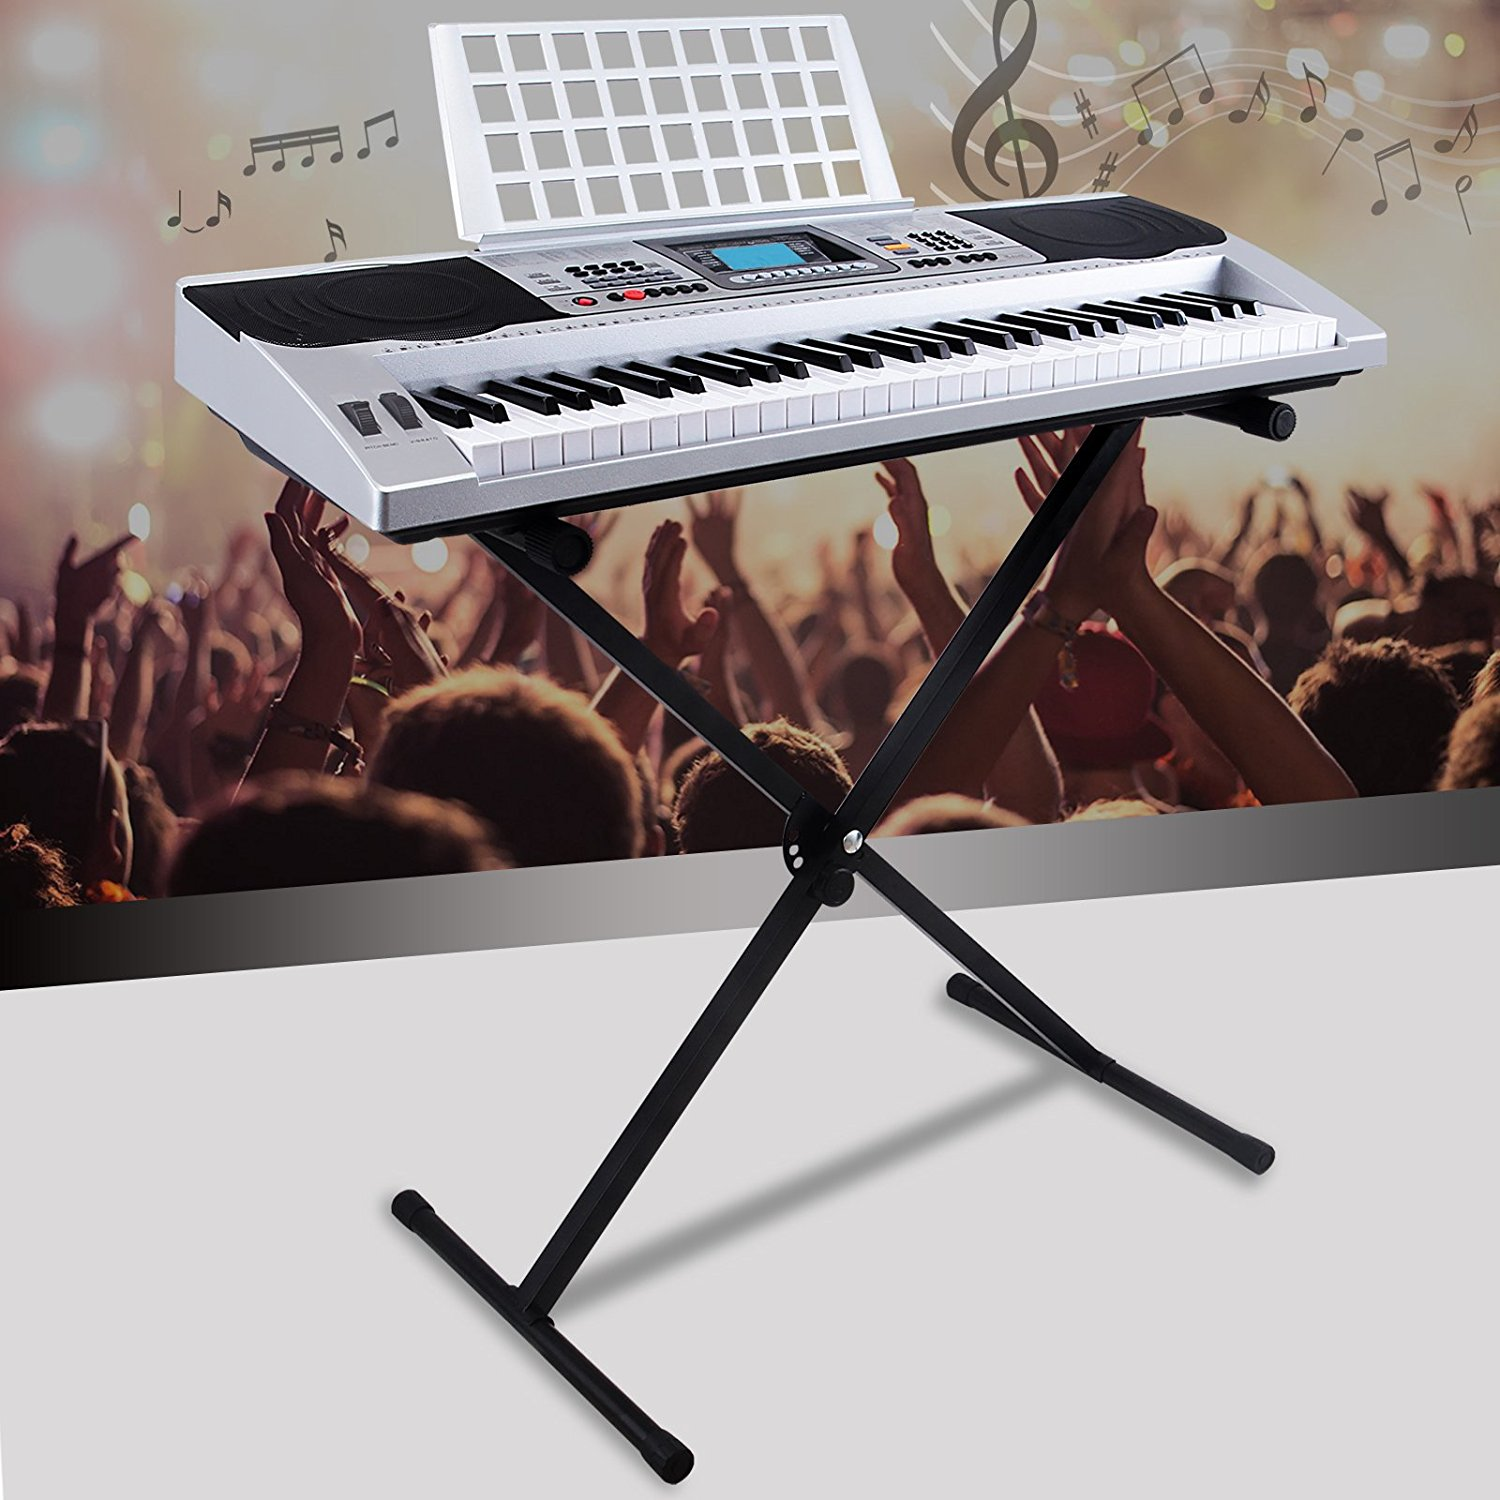 Uenjoy 61 Key Music Digital Electronic Keyboard Electric Piano Organ With X Stand,Silver